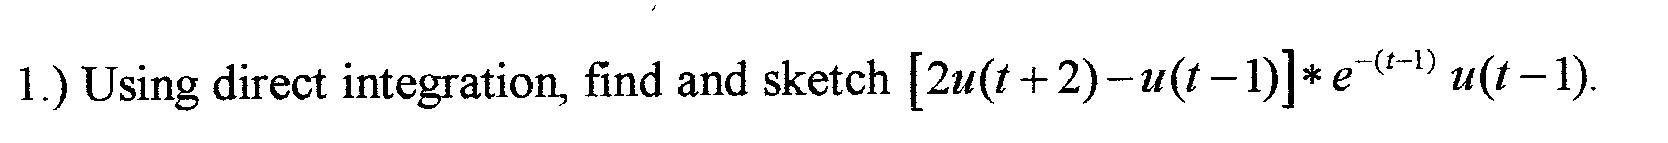 Using direct integration, find and sketch [2u(t +